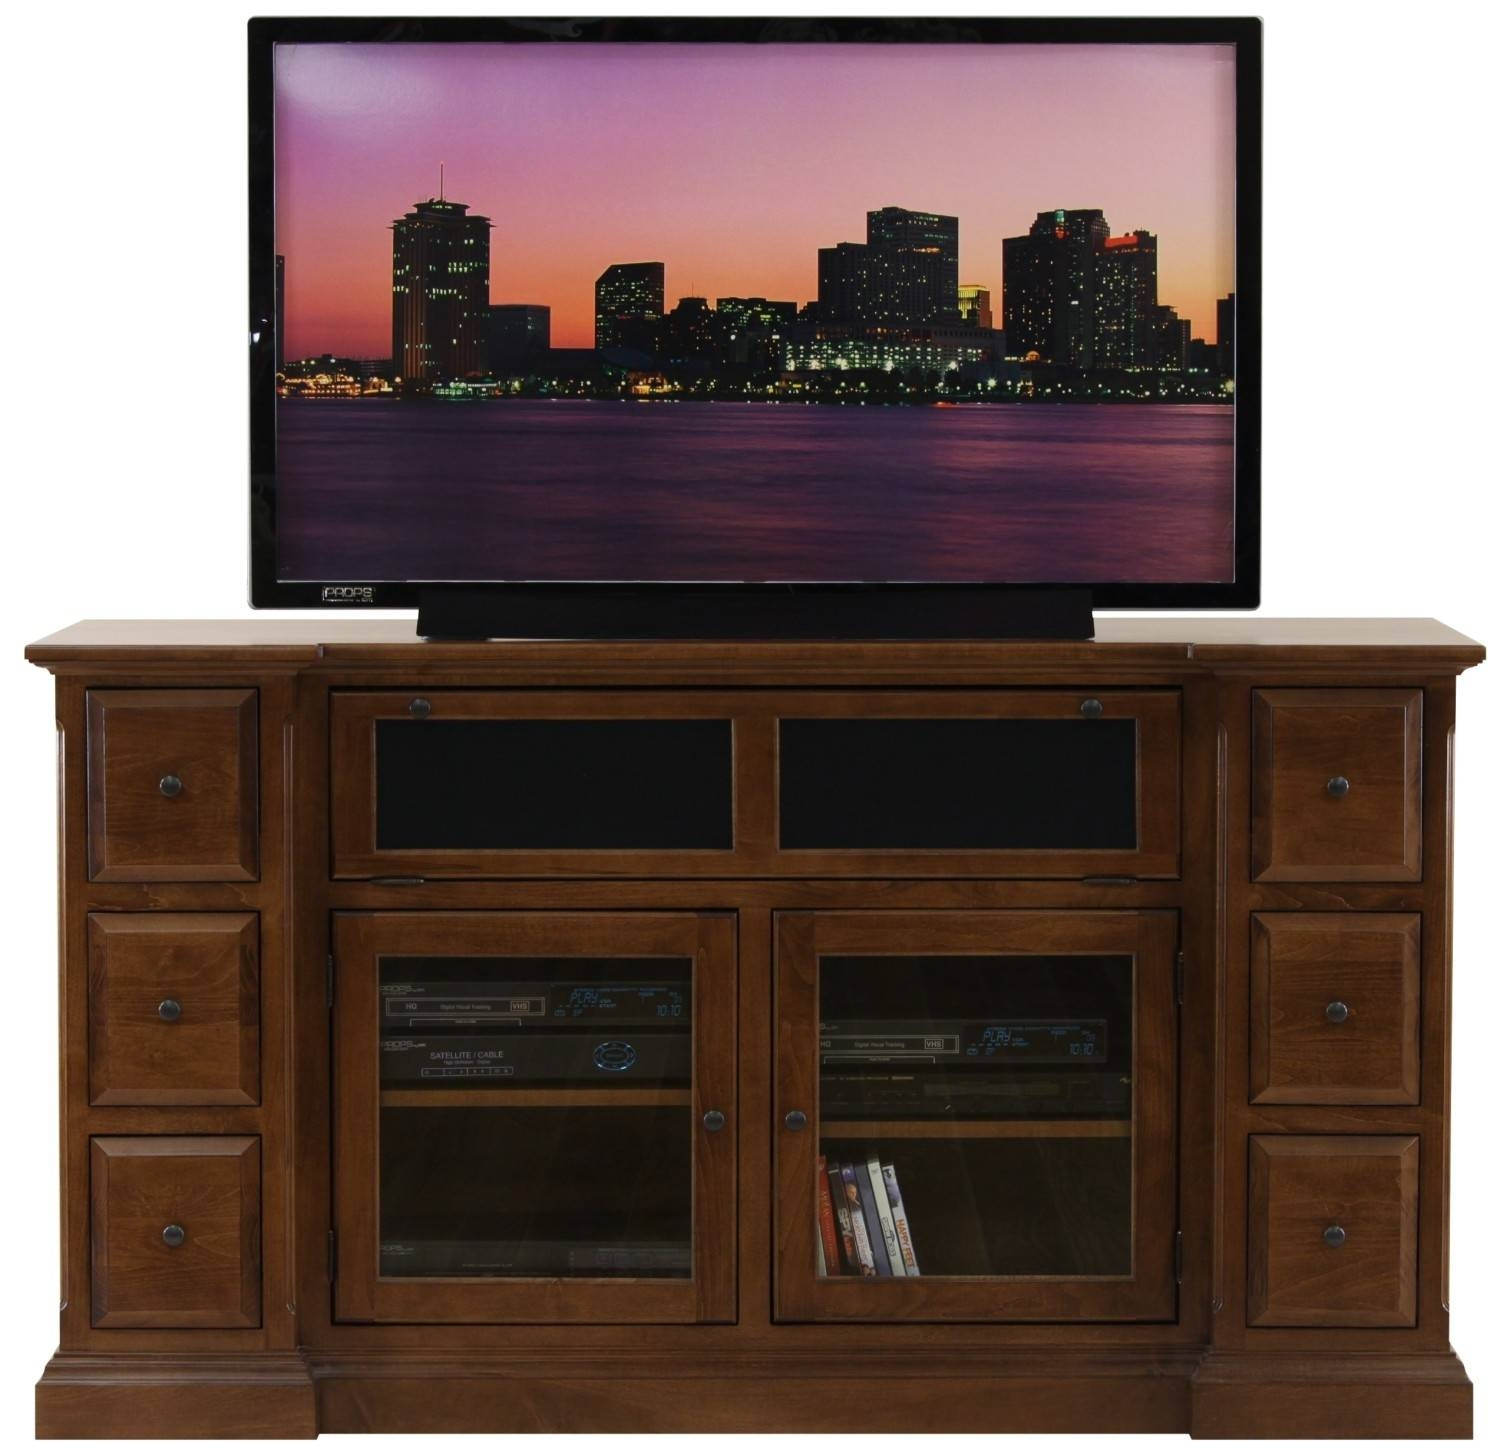 Fresh Denver Cherry Wood Tv Stand Walmart #17102 pertaining to Cherry Wood Tv Cabinets (Image 7 of 15)